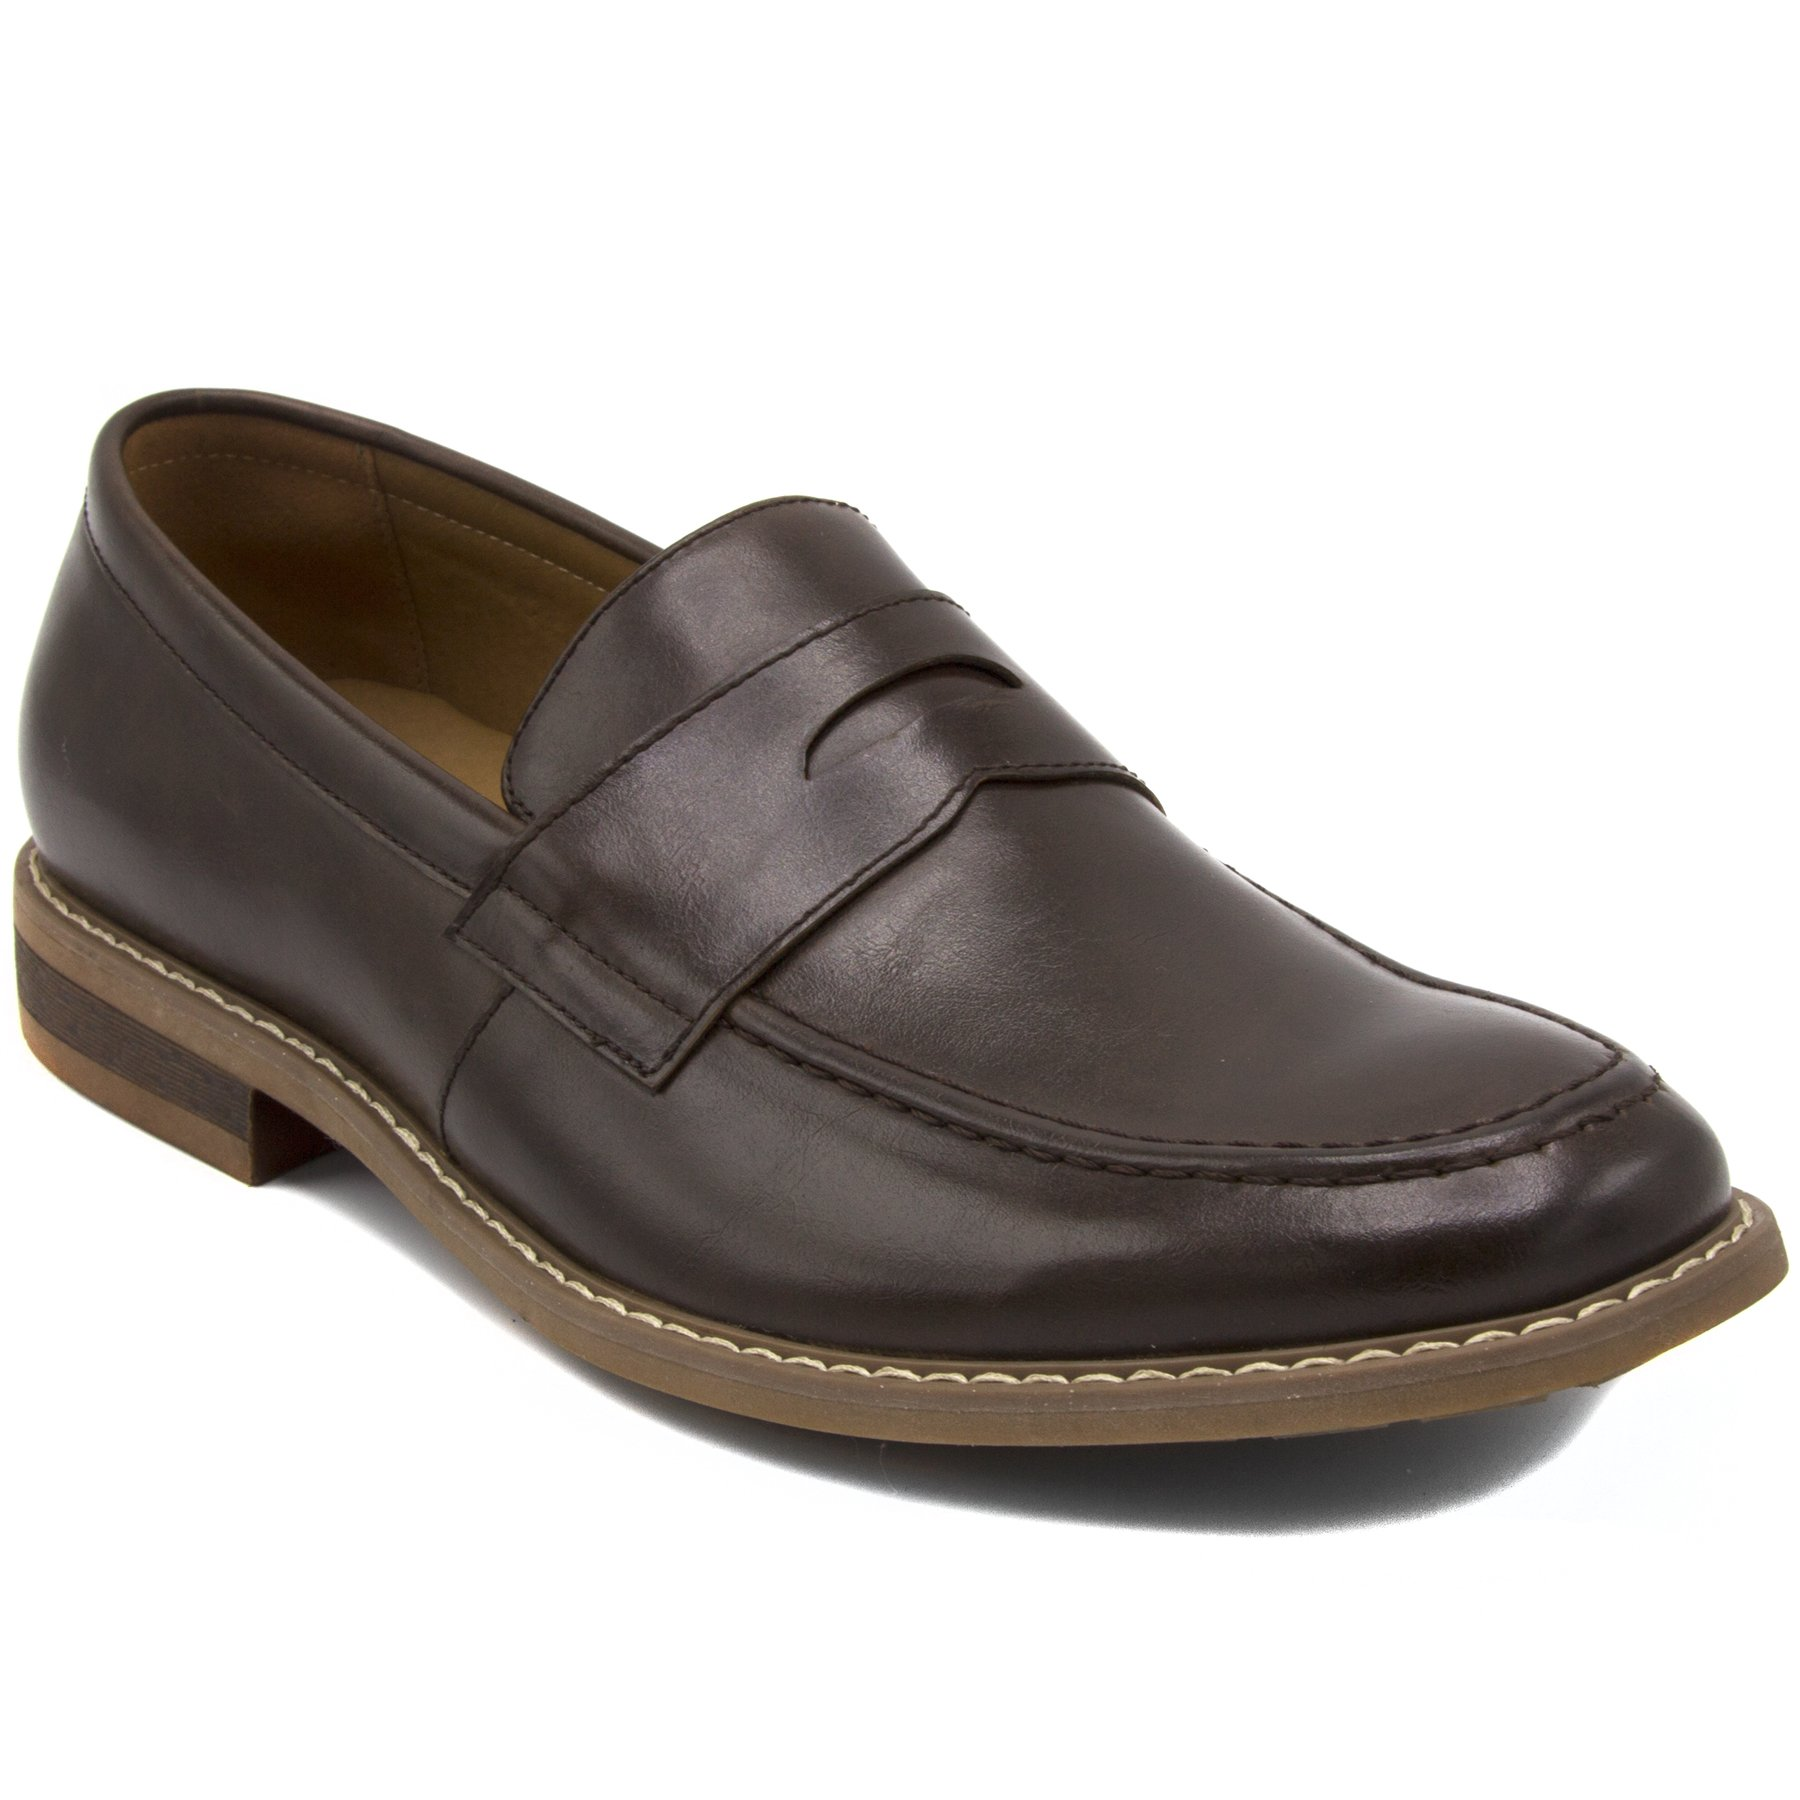 Nautica Men's Dress Shoes, Lace up Oxford, Slip On Moc Toe Loafer-Elias-Choclate Smooth-13